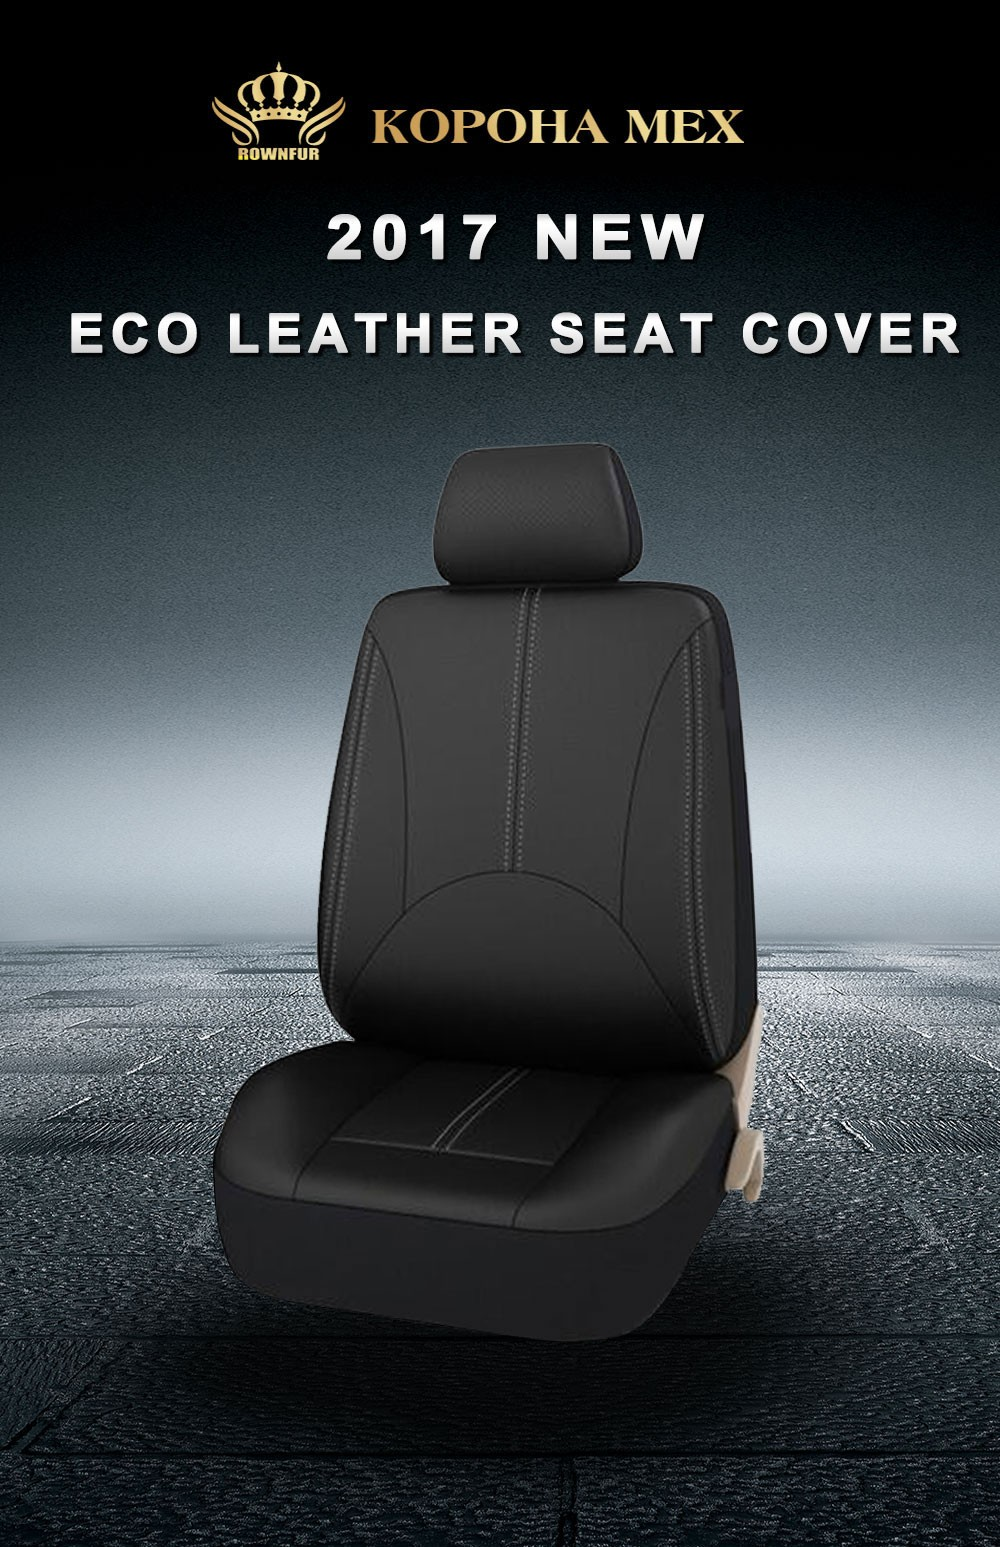 Rownfur High Quality 3D Four Season Fashion Universal PU Leather front seat Car Seat Cover for Car Seat Protector